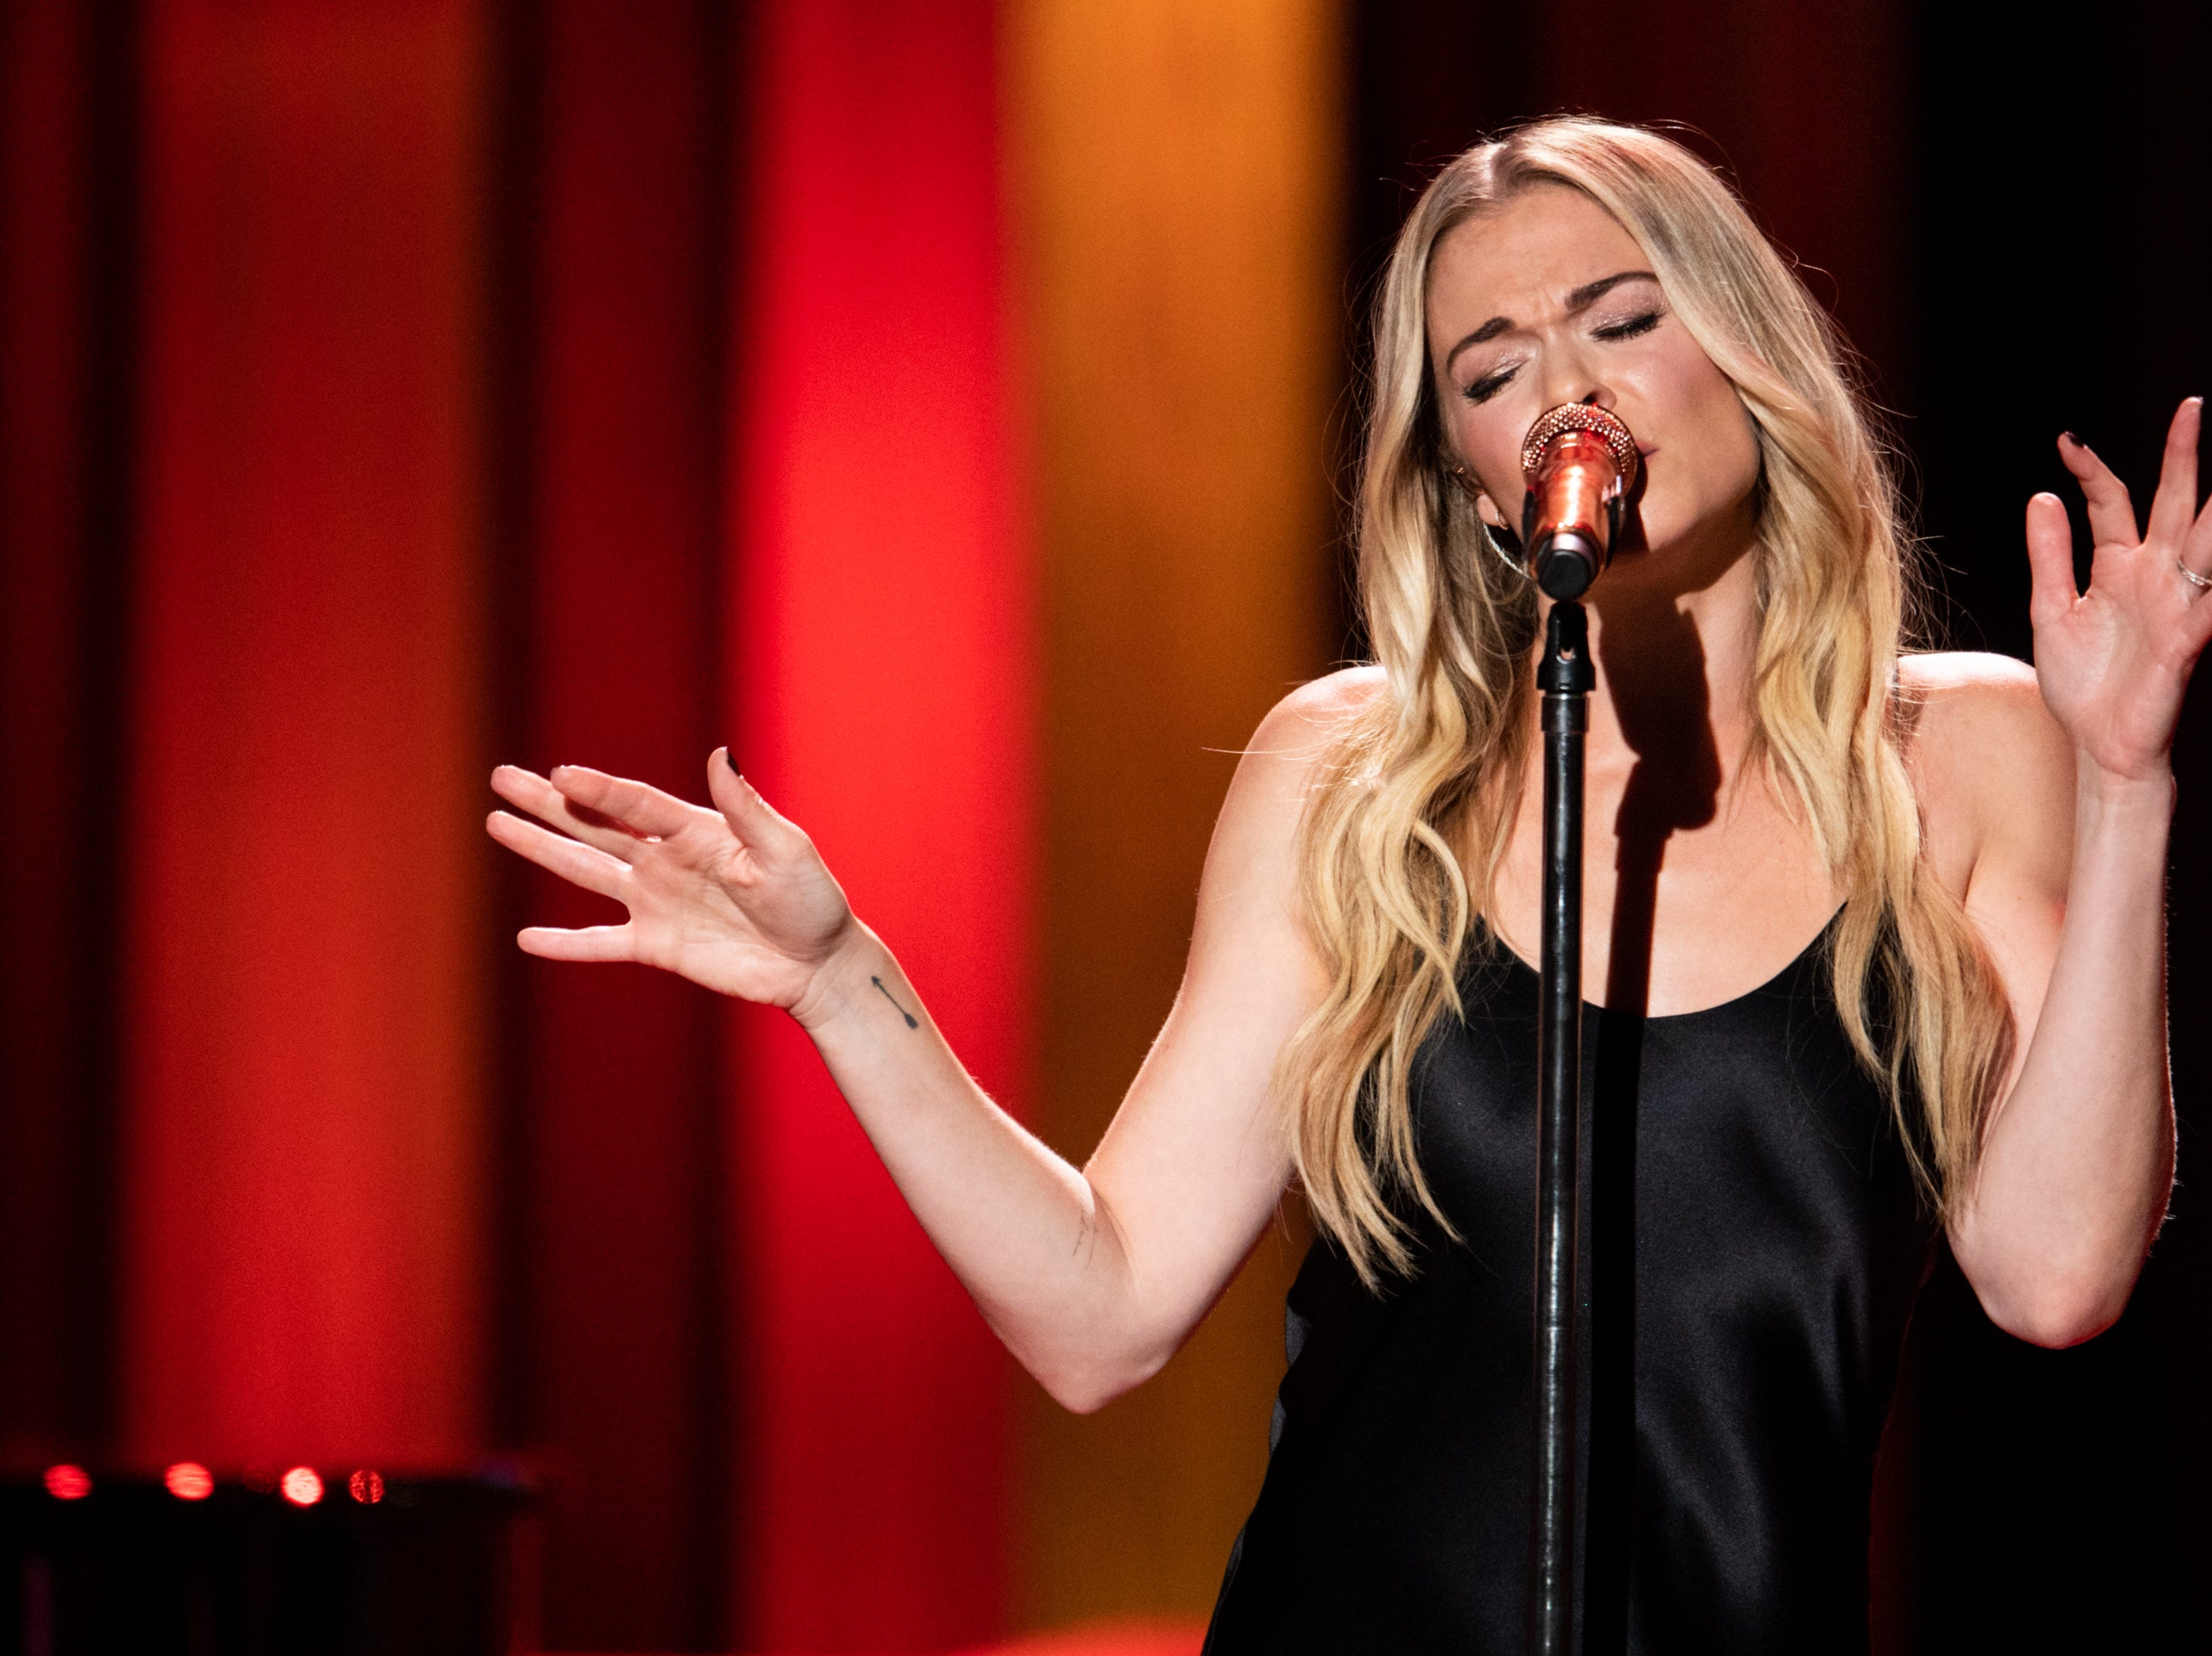 LeAnn Rimes performs during the An Opry Salute to Ray Charles concert at The Grand Ole Opry in Nashville, Tenn., Monday, Oct. 8, 2018.